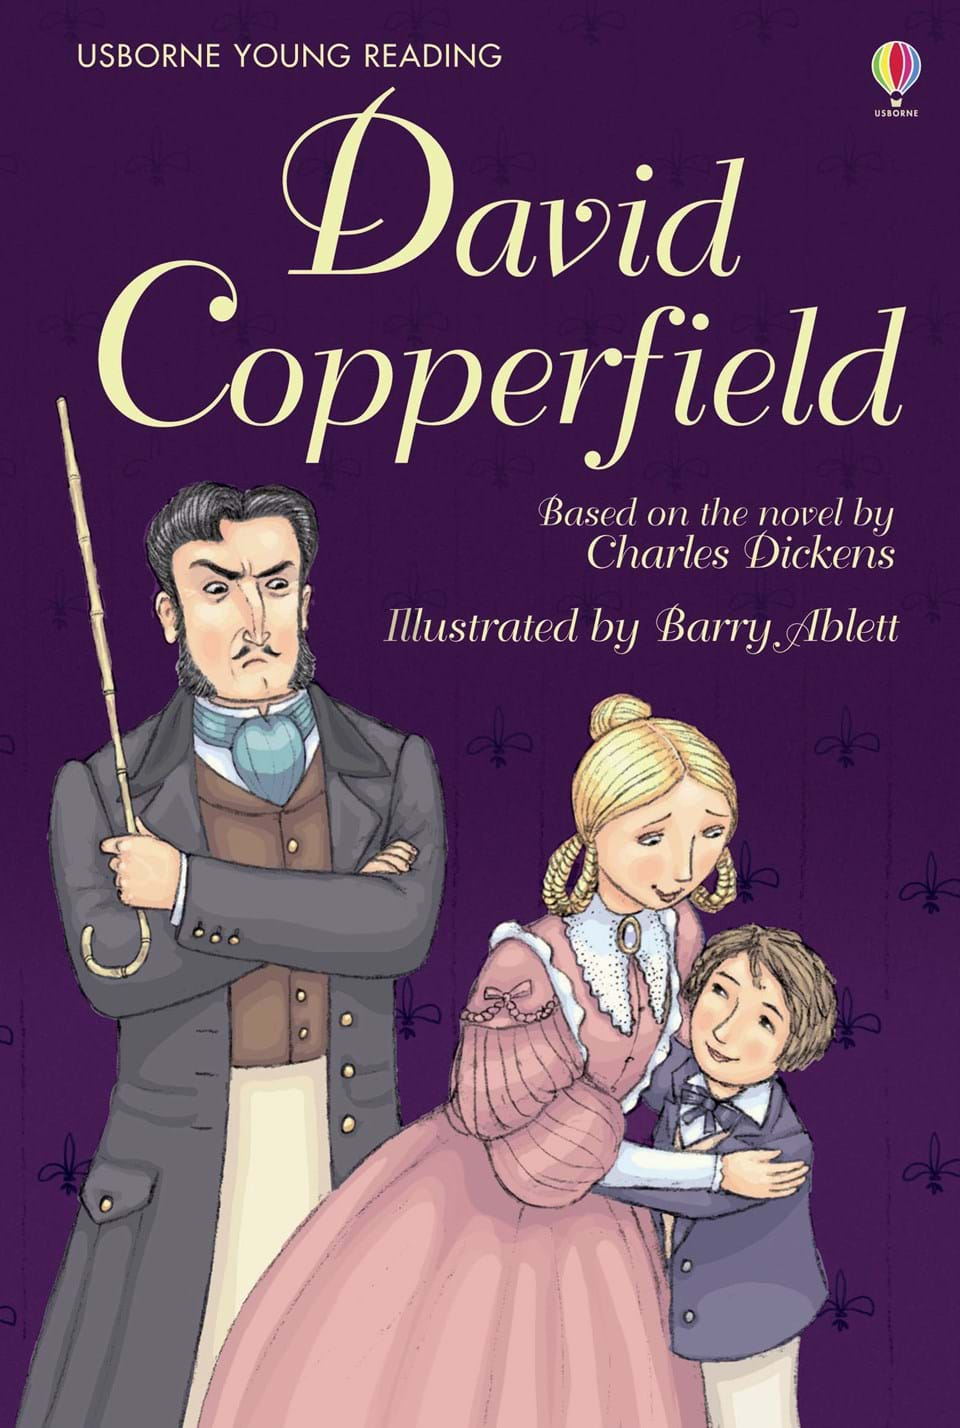 david copperfield at usborne books at home david copperfield